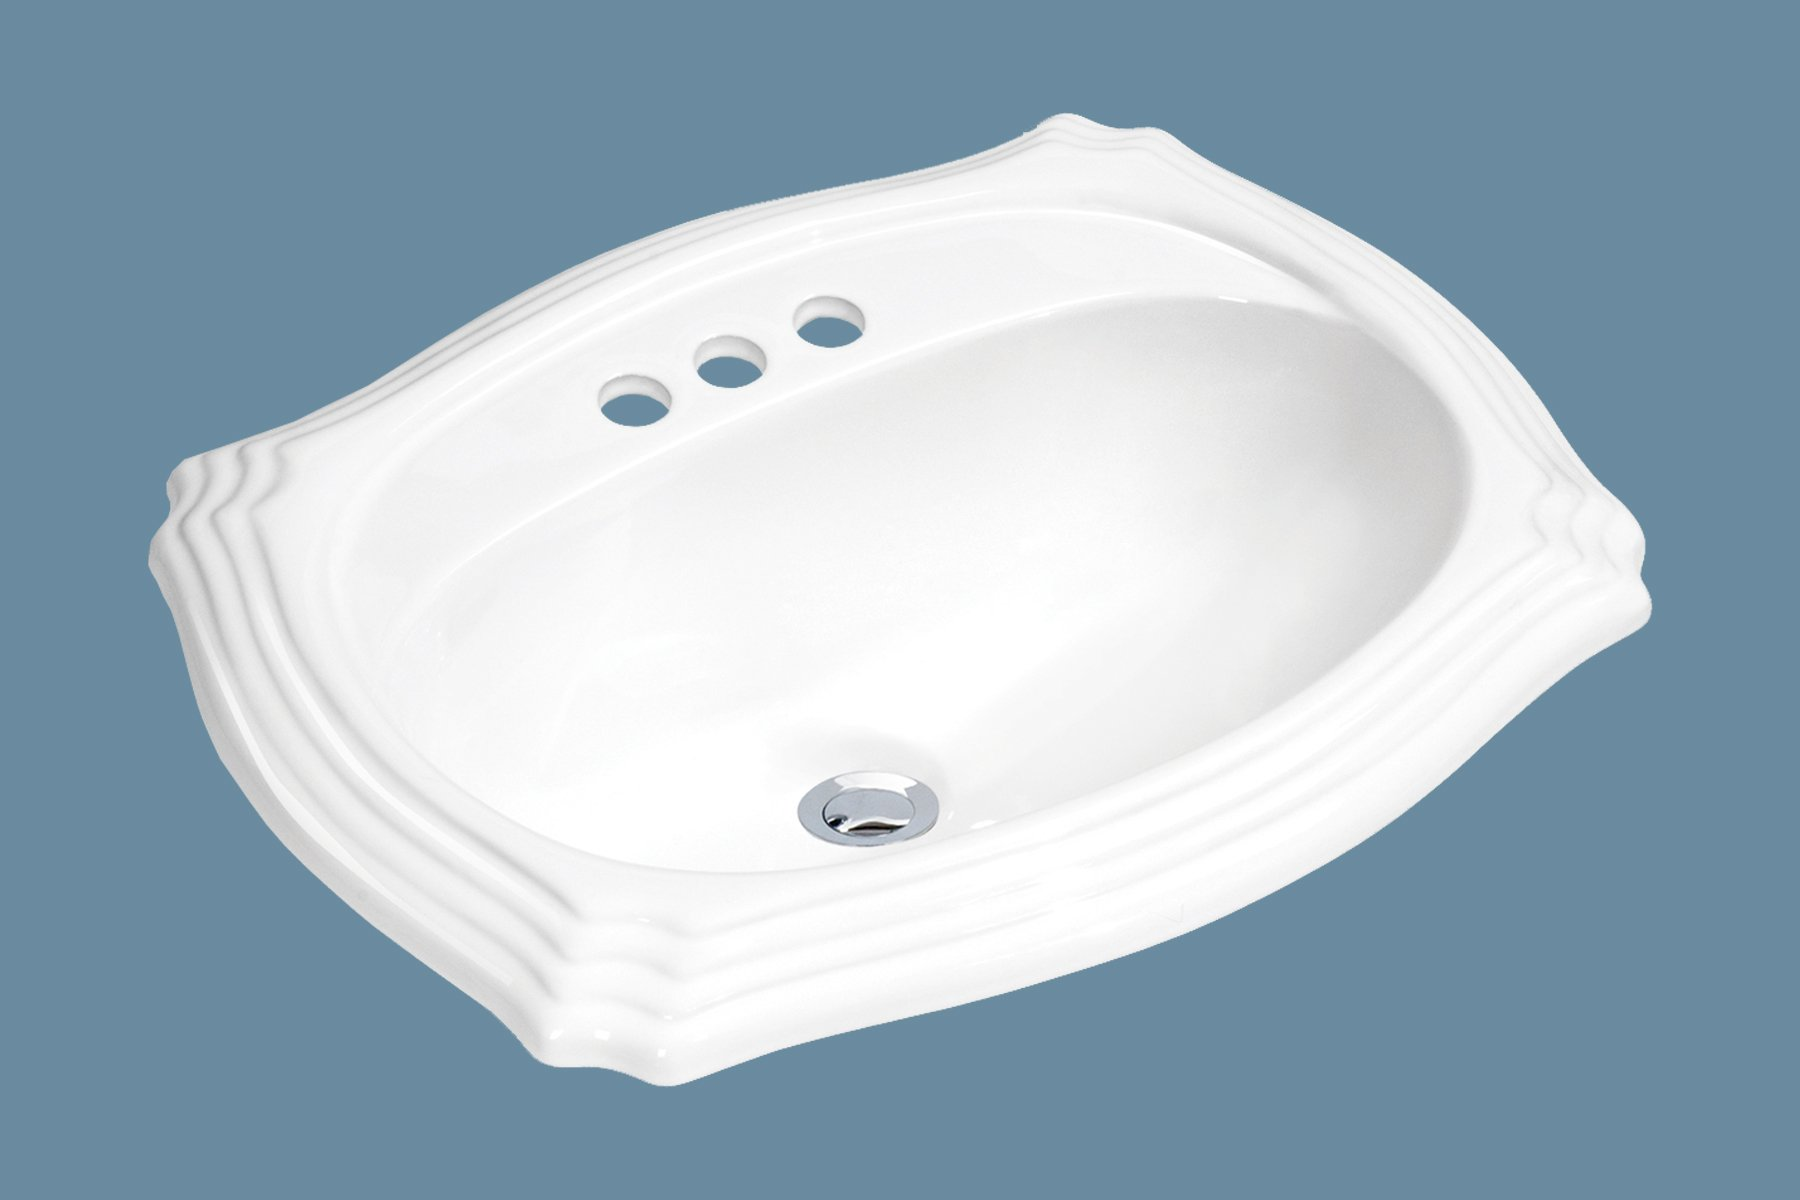 MSCBDP-2319-3W 23'' x 19'' White Oval Porcelain Drop-In Top Mount Bathroom Sink